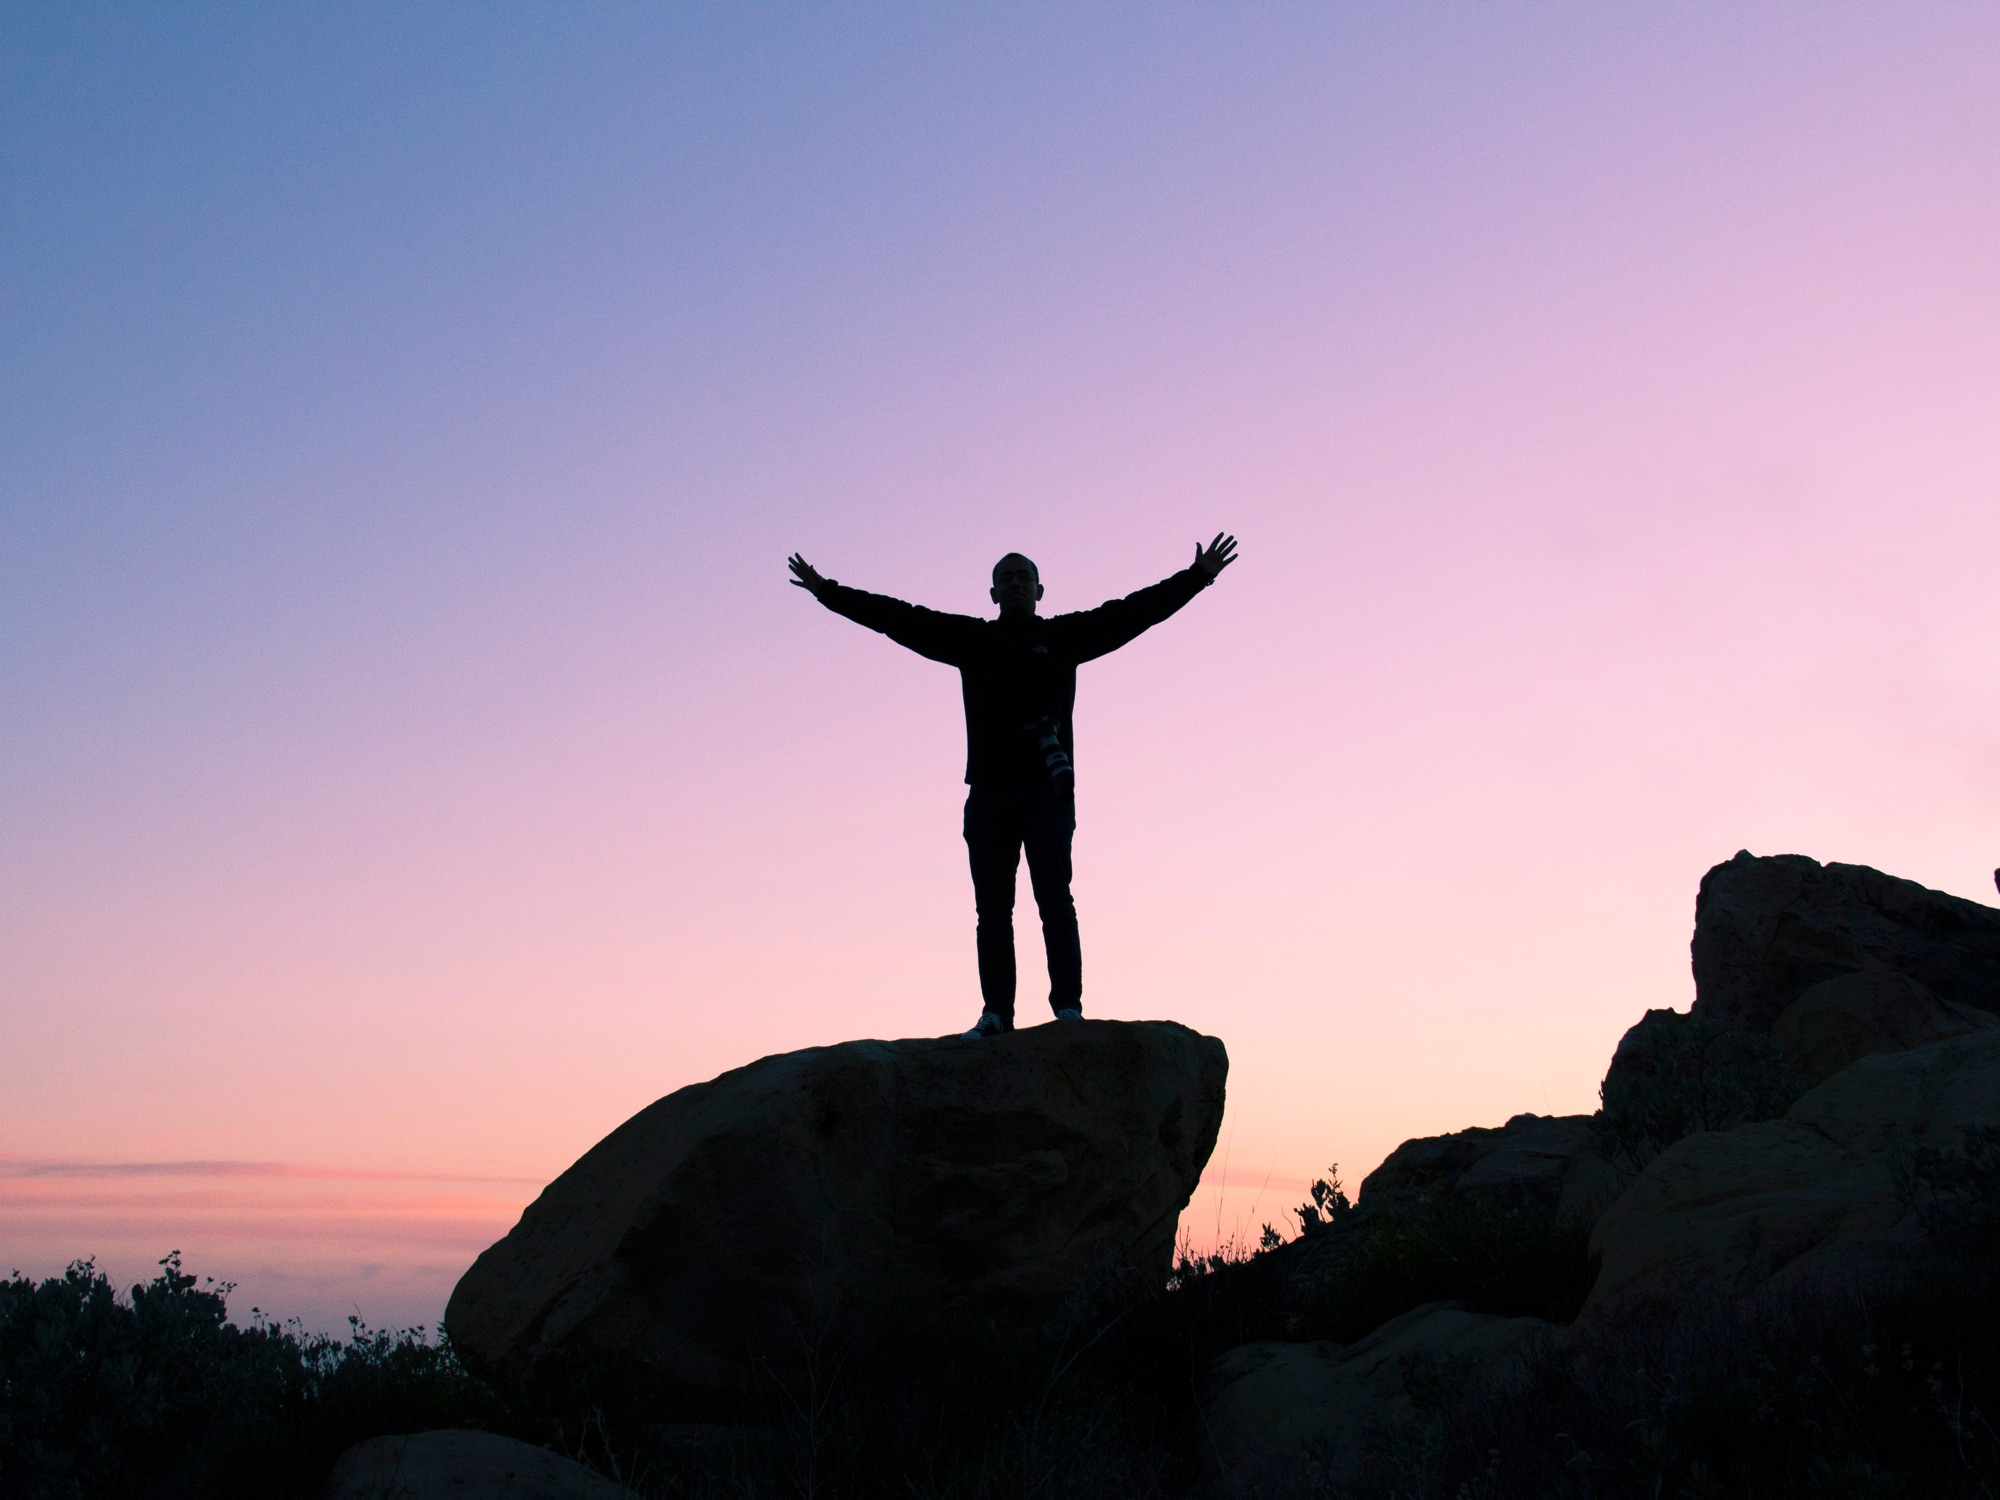 Image of a person standing on a tall rock, at sunrise, with their hands raised triumphantly.